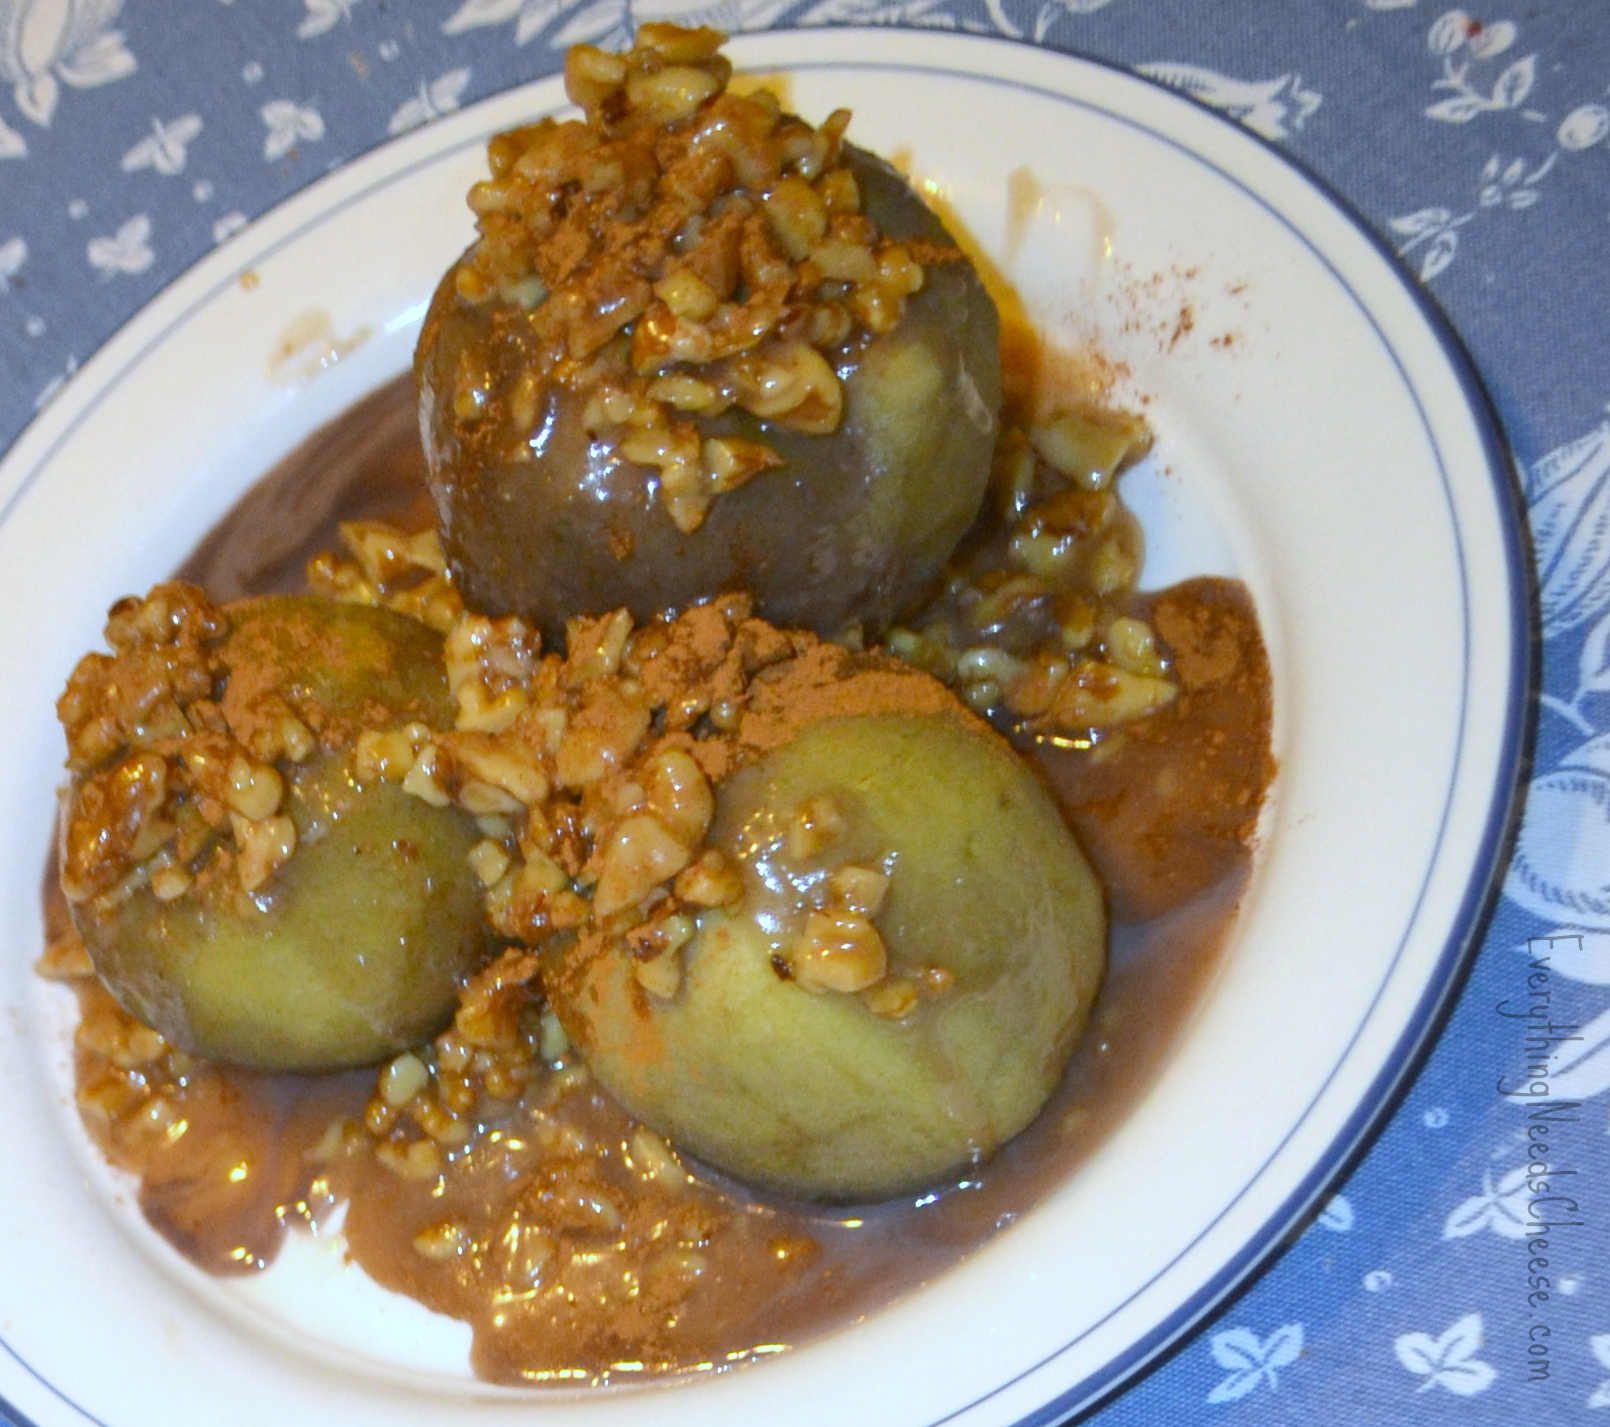 Cinnamon Poached Apples With Toasted Walnuts Recipes — Dishmaps